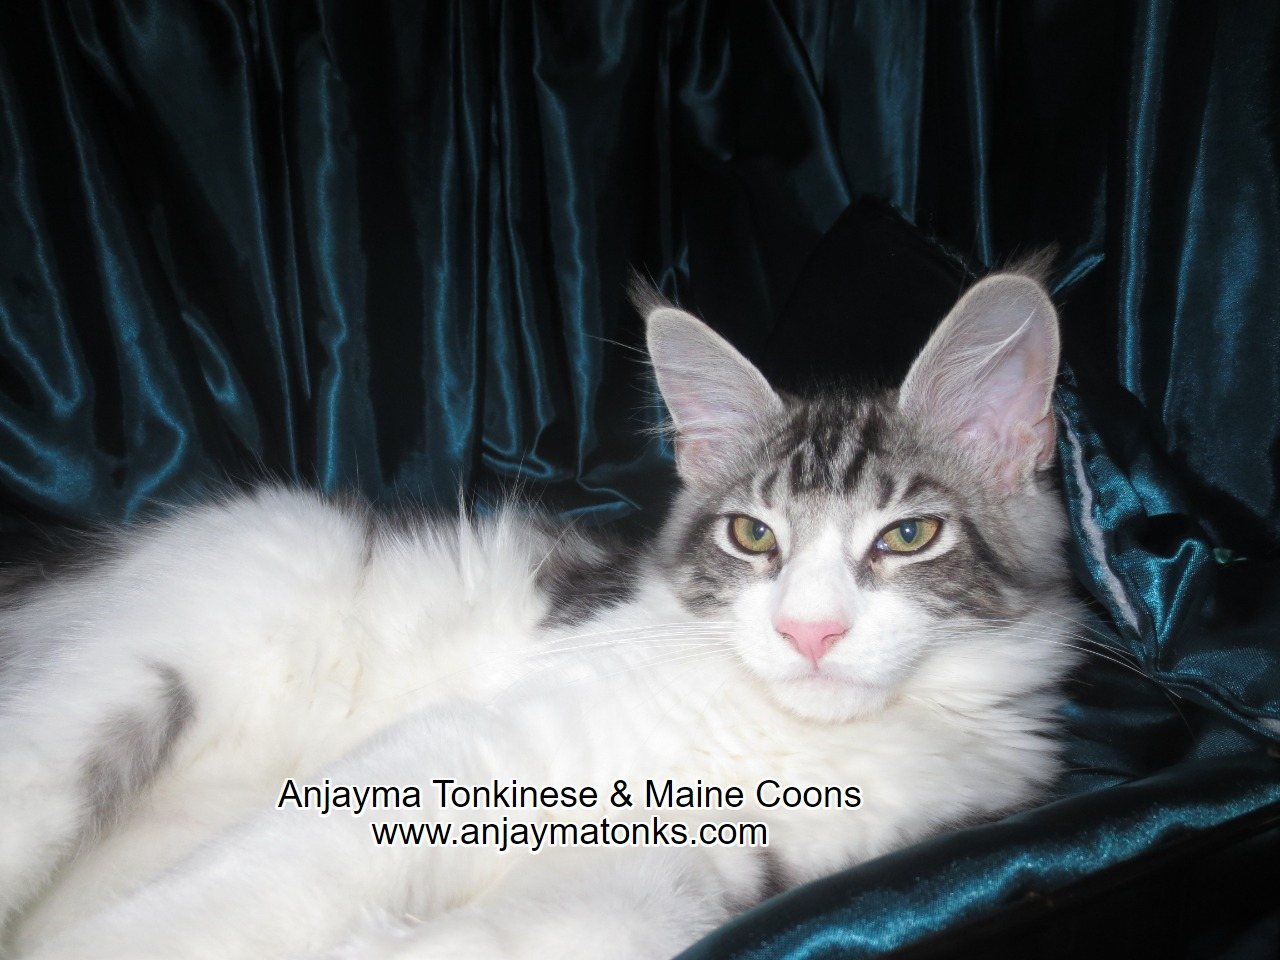 Icecoons Wolfsbane - Silver Classic Tabby & White gallery image